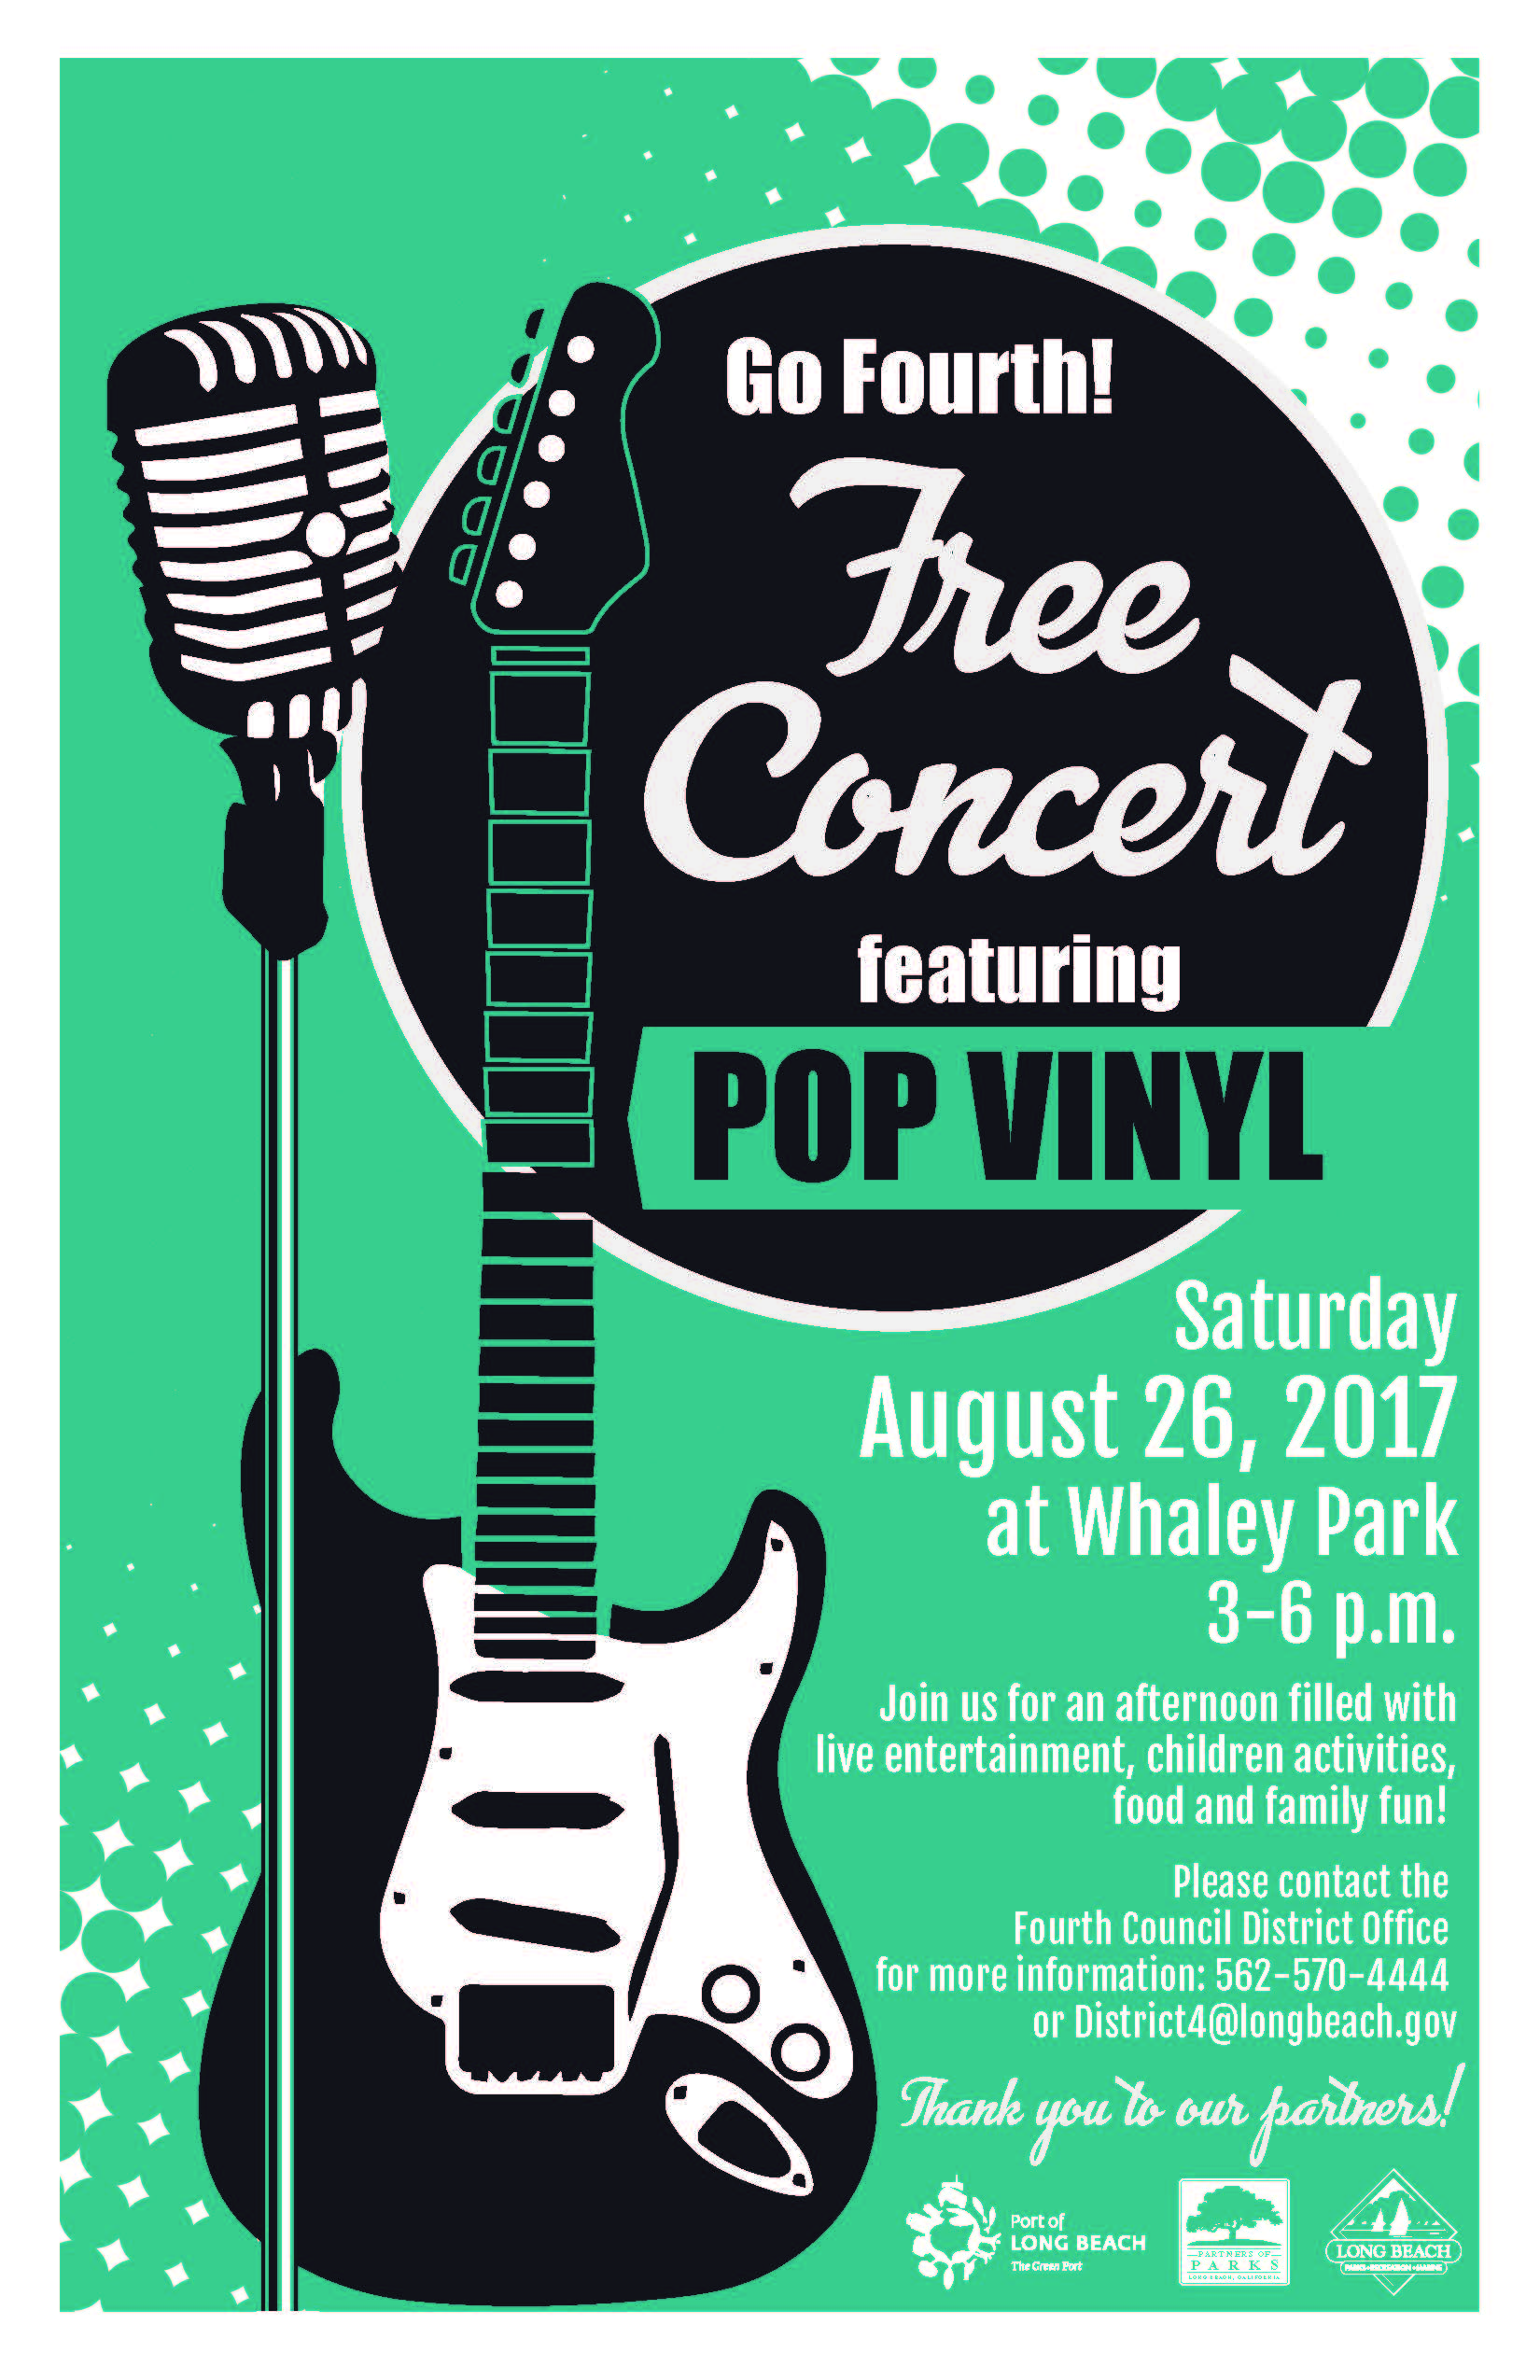 Pop Vinyl at Whaley Park flier